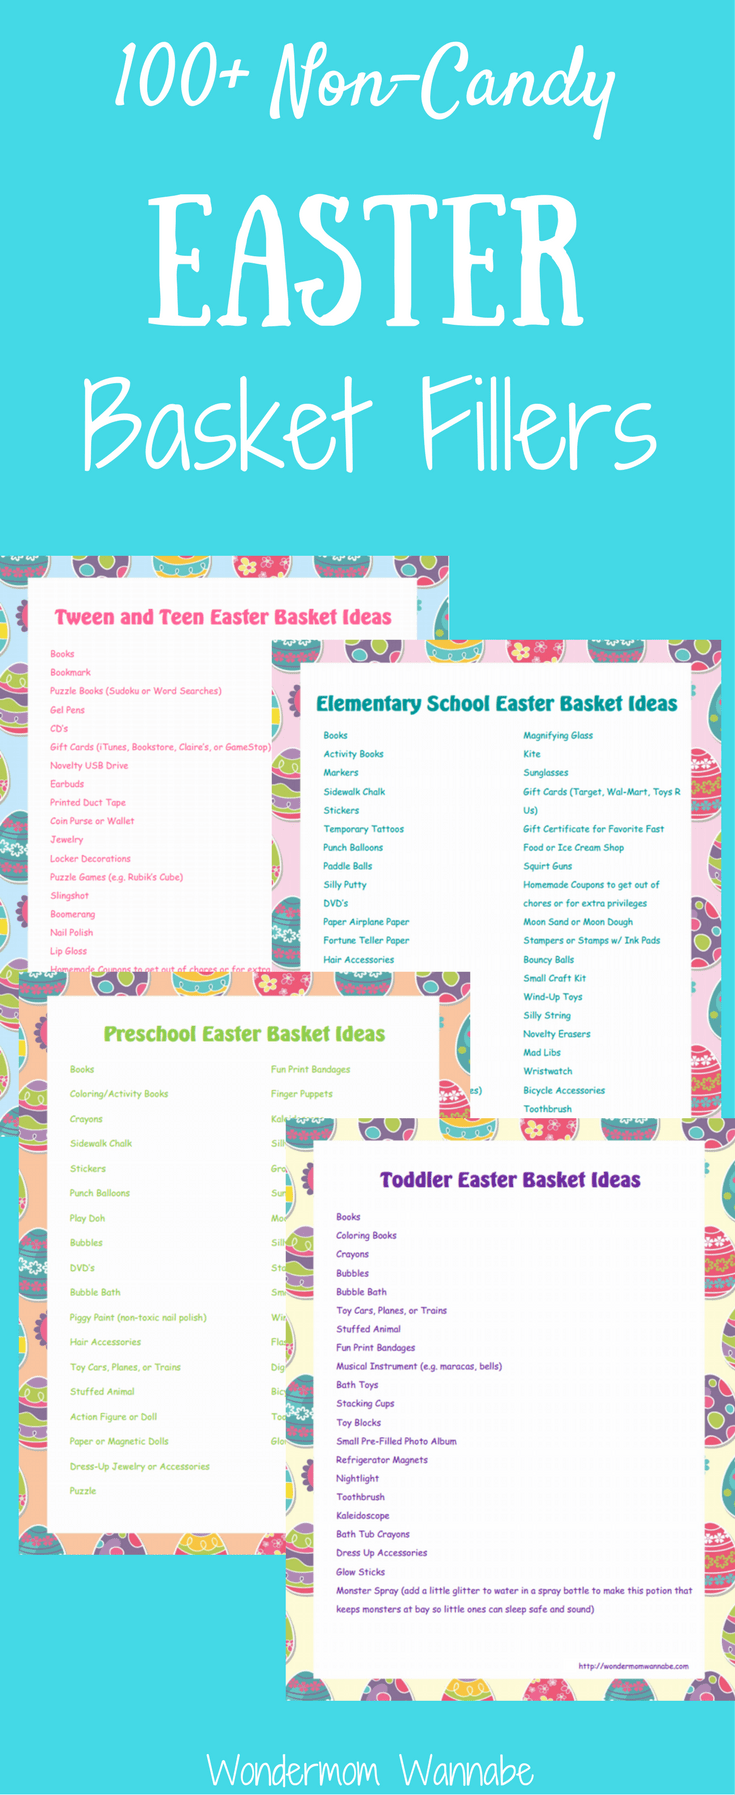 Lots of non-candy Easter basket fillers divided by age group and with free printable shopping lists!